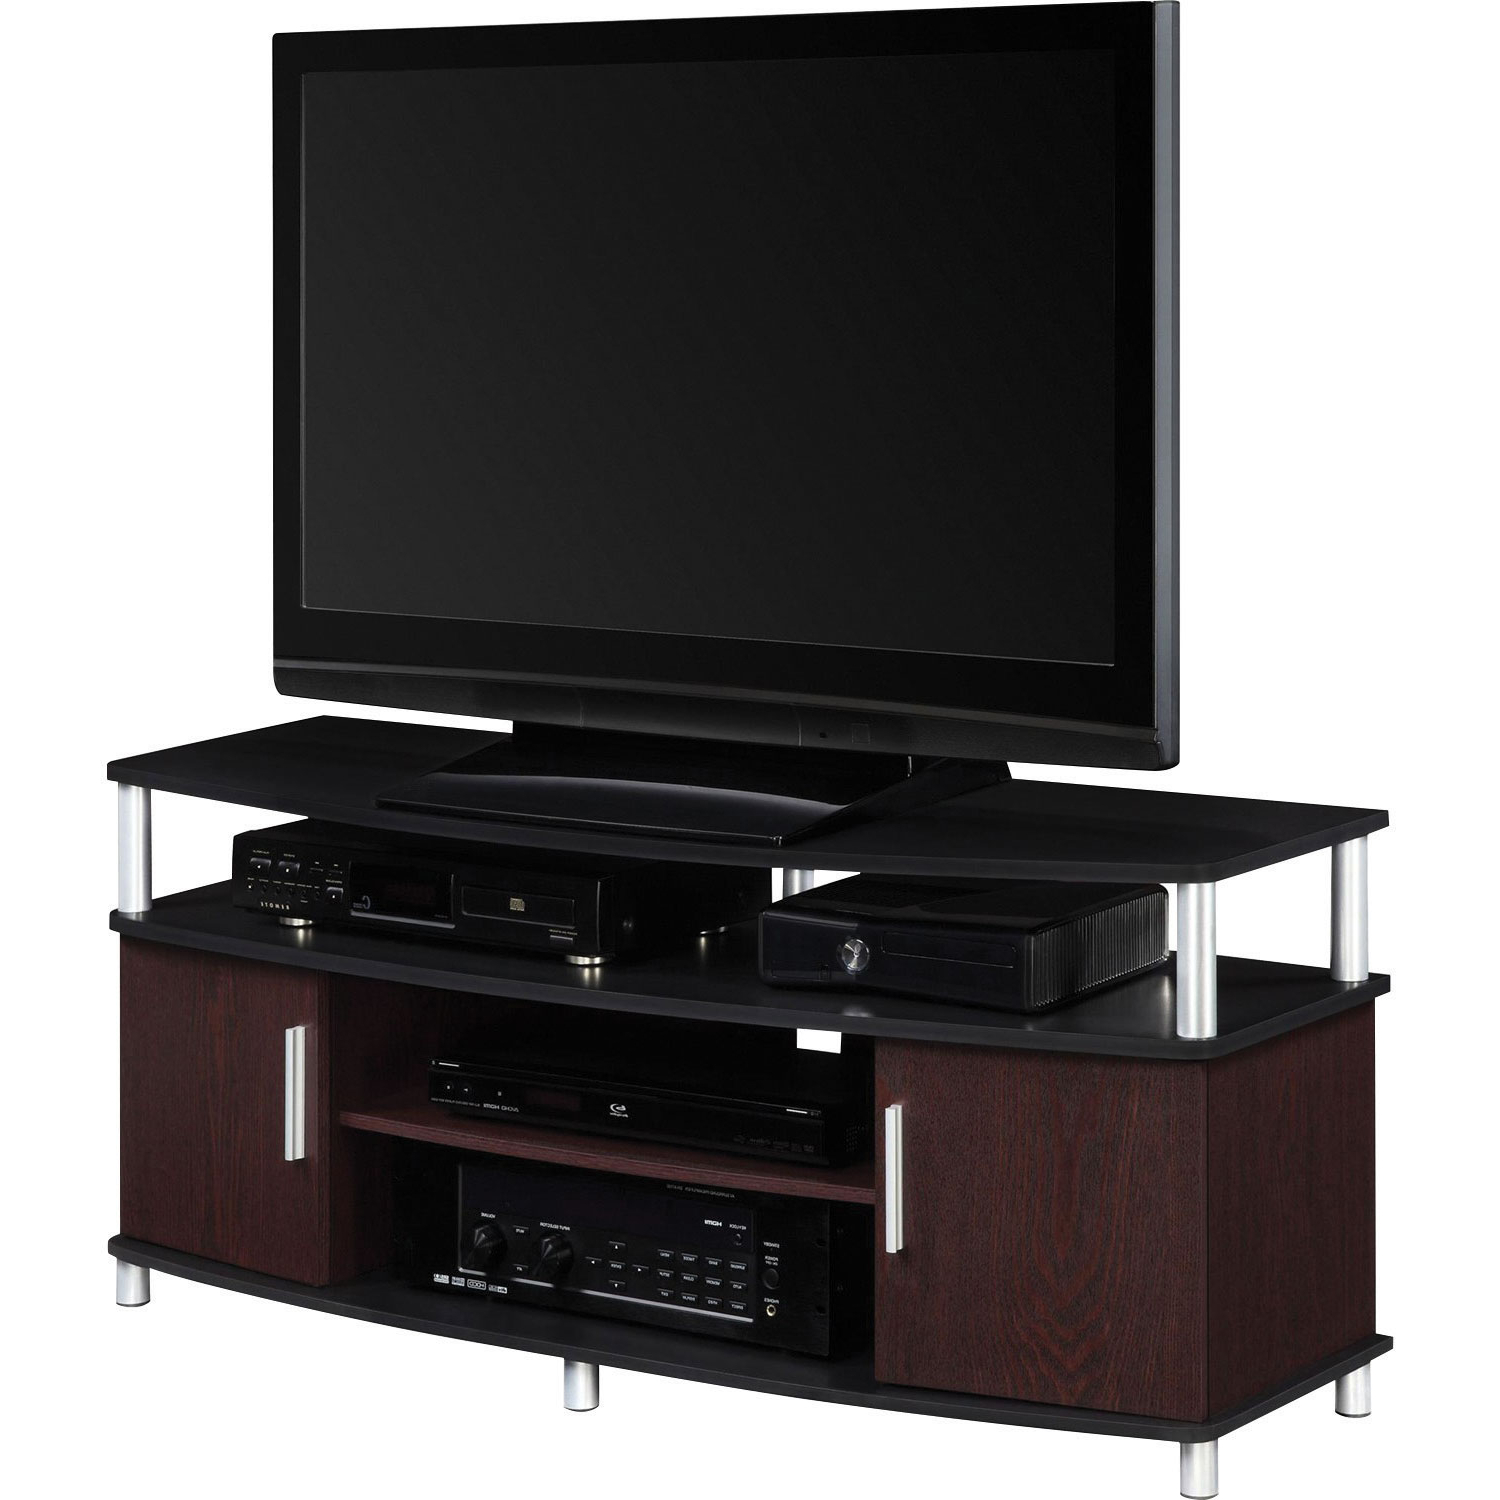 "2017 Dorel Carson 50"" Tv Stand – Cherry/black : Tv Stands – Best Buy Canada In Cherry Tv Stands (View 11 of 20)"